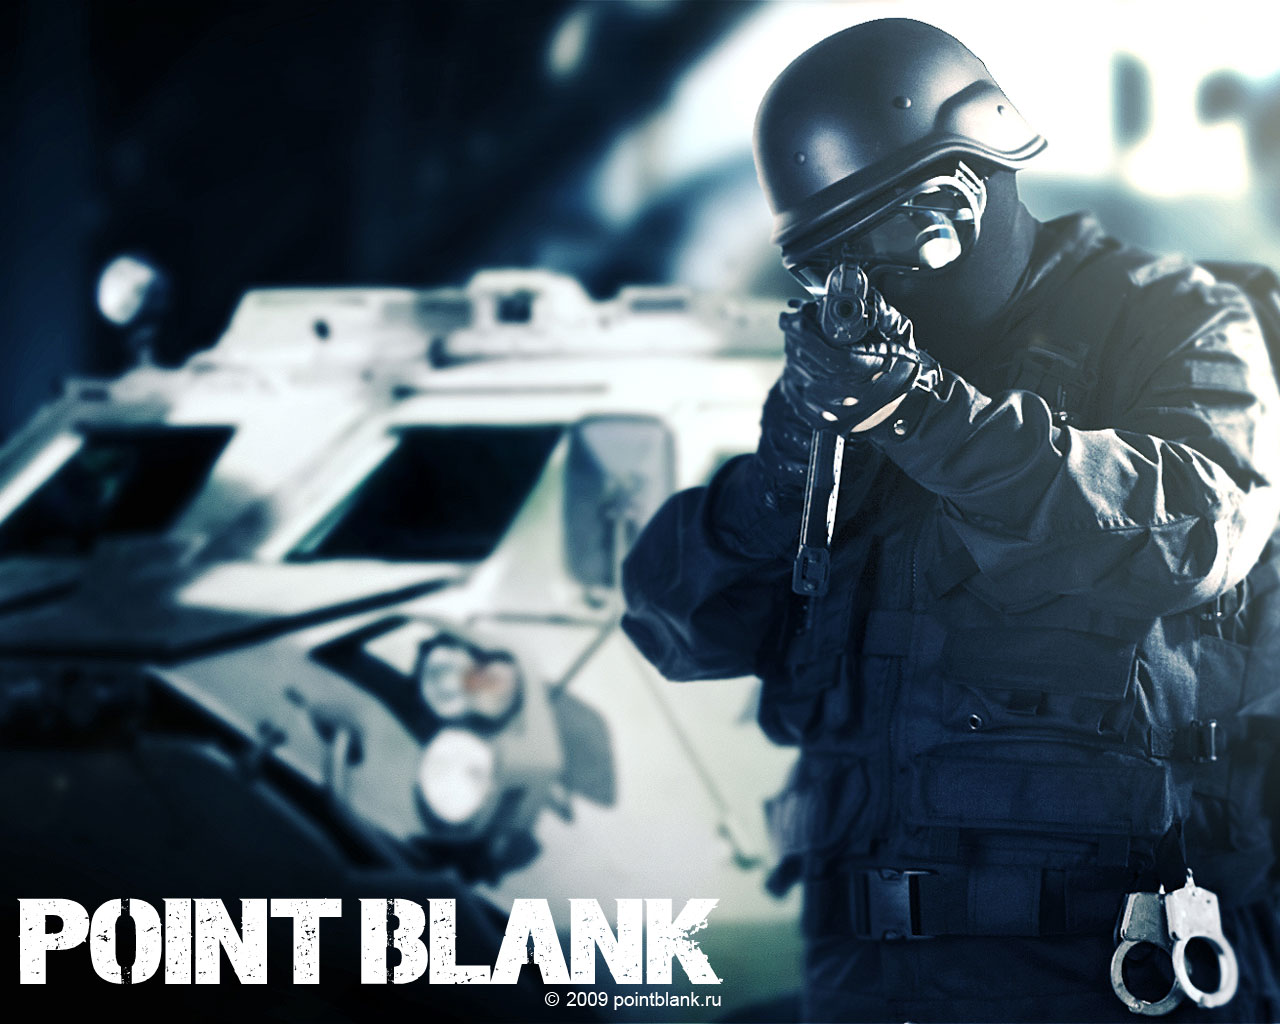 http://2.bp.blogspot.com/_L7PQnIf1Nho/THUSn4yTy0I/AAAAAAAAADk/fZt7ABqu_50/s1600/point-blank-video-game-wallpapers.jpg